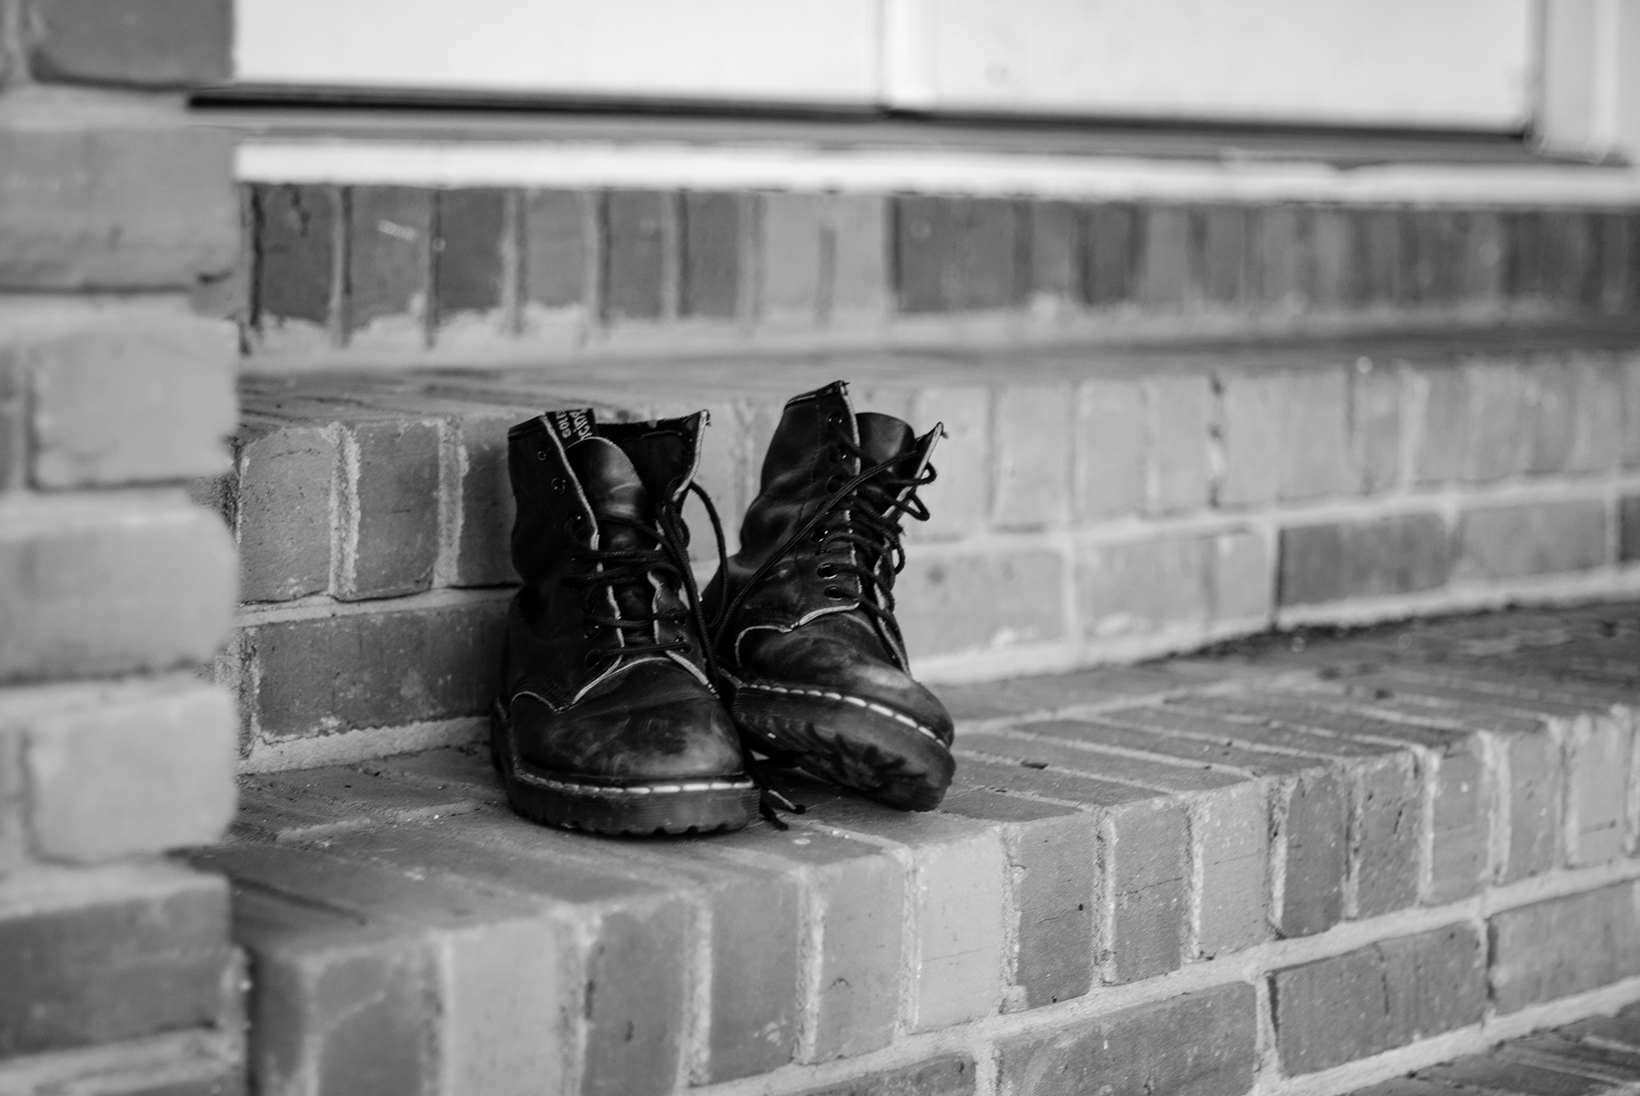 A close-up of black boots upon a brick step outside a door.